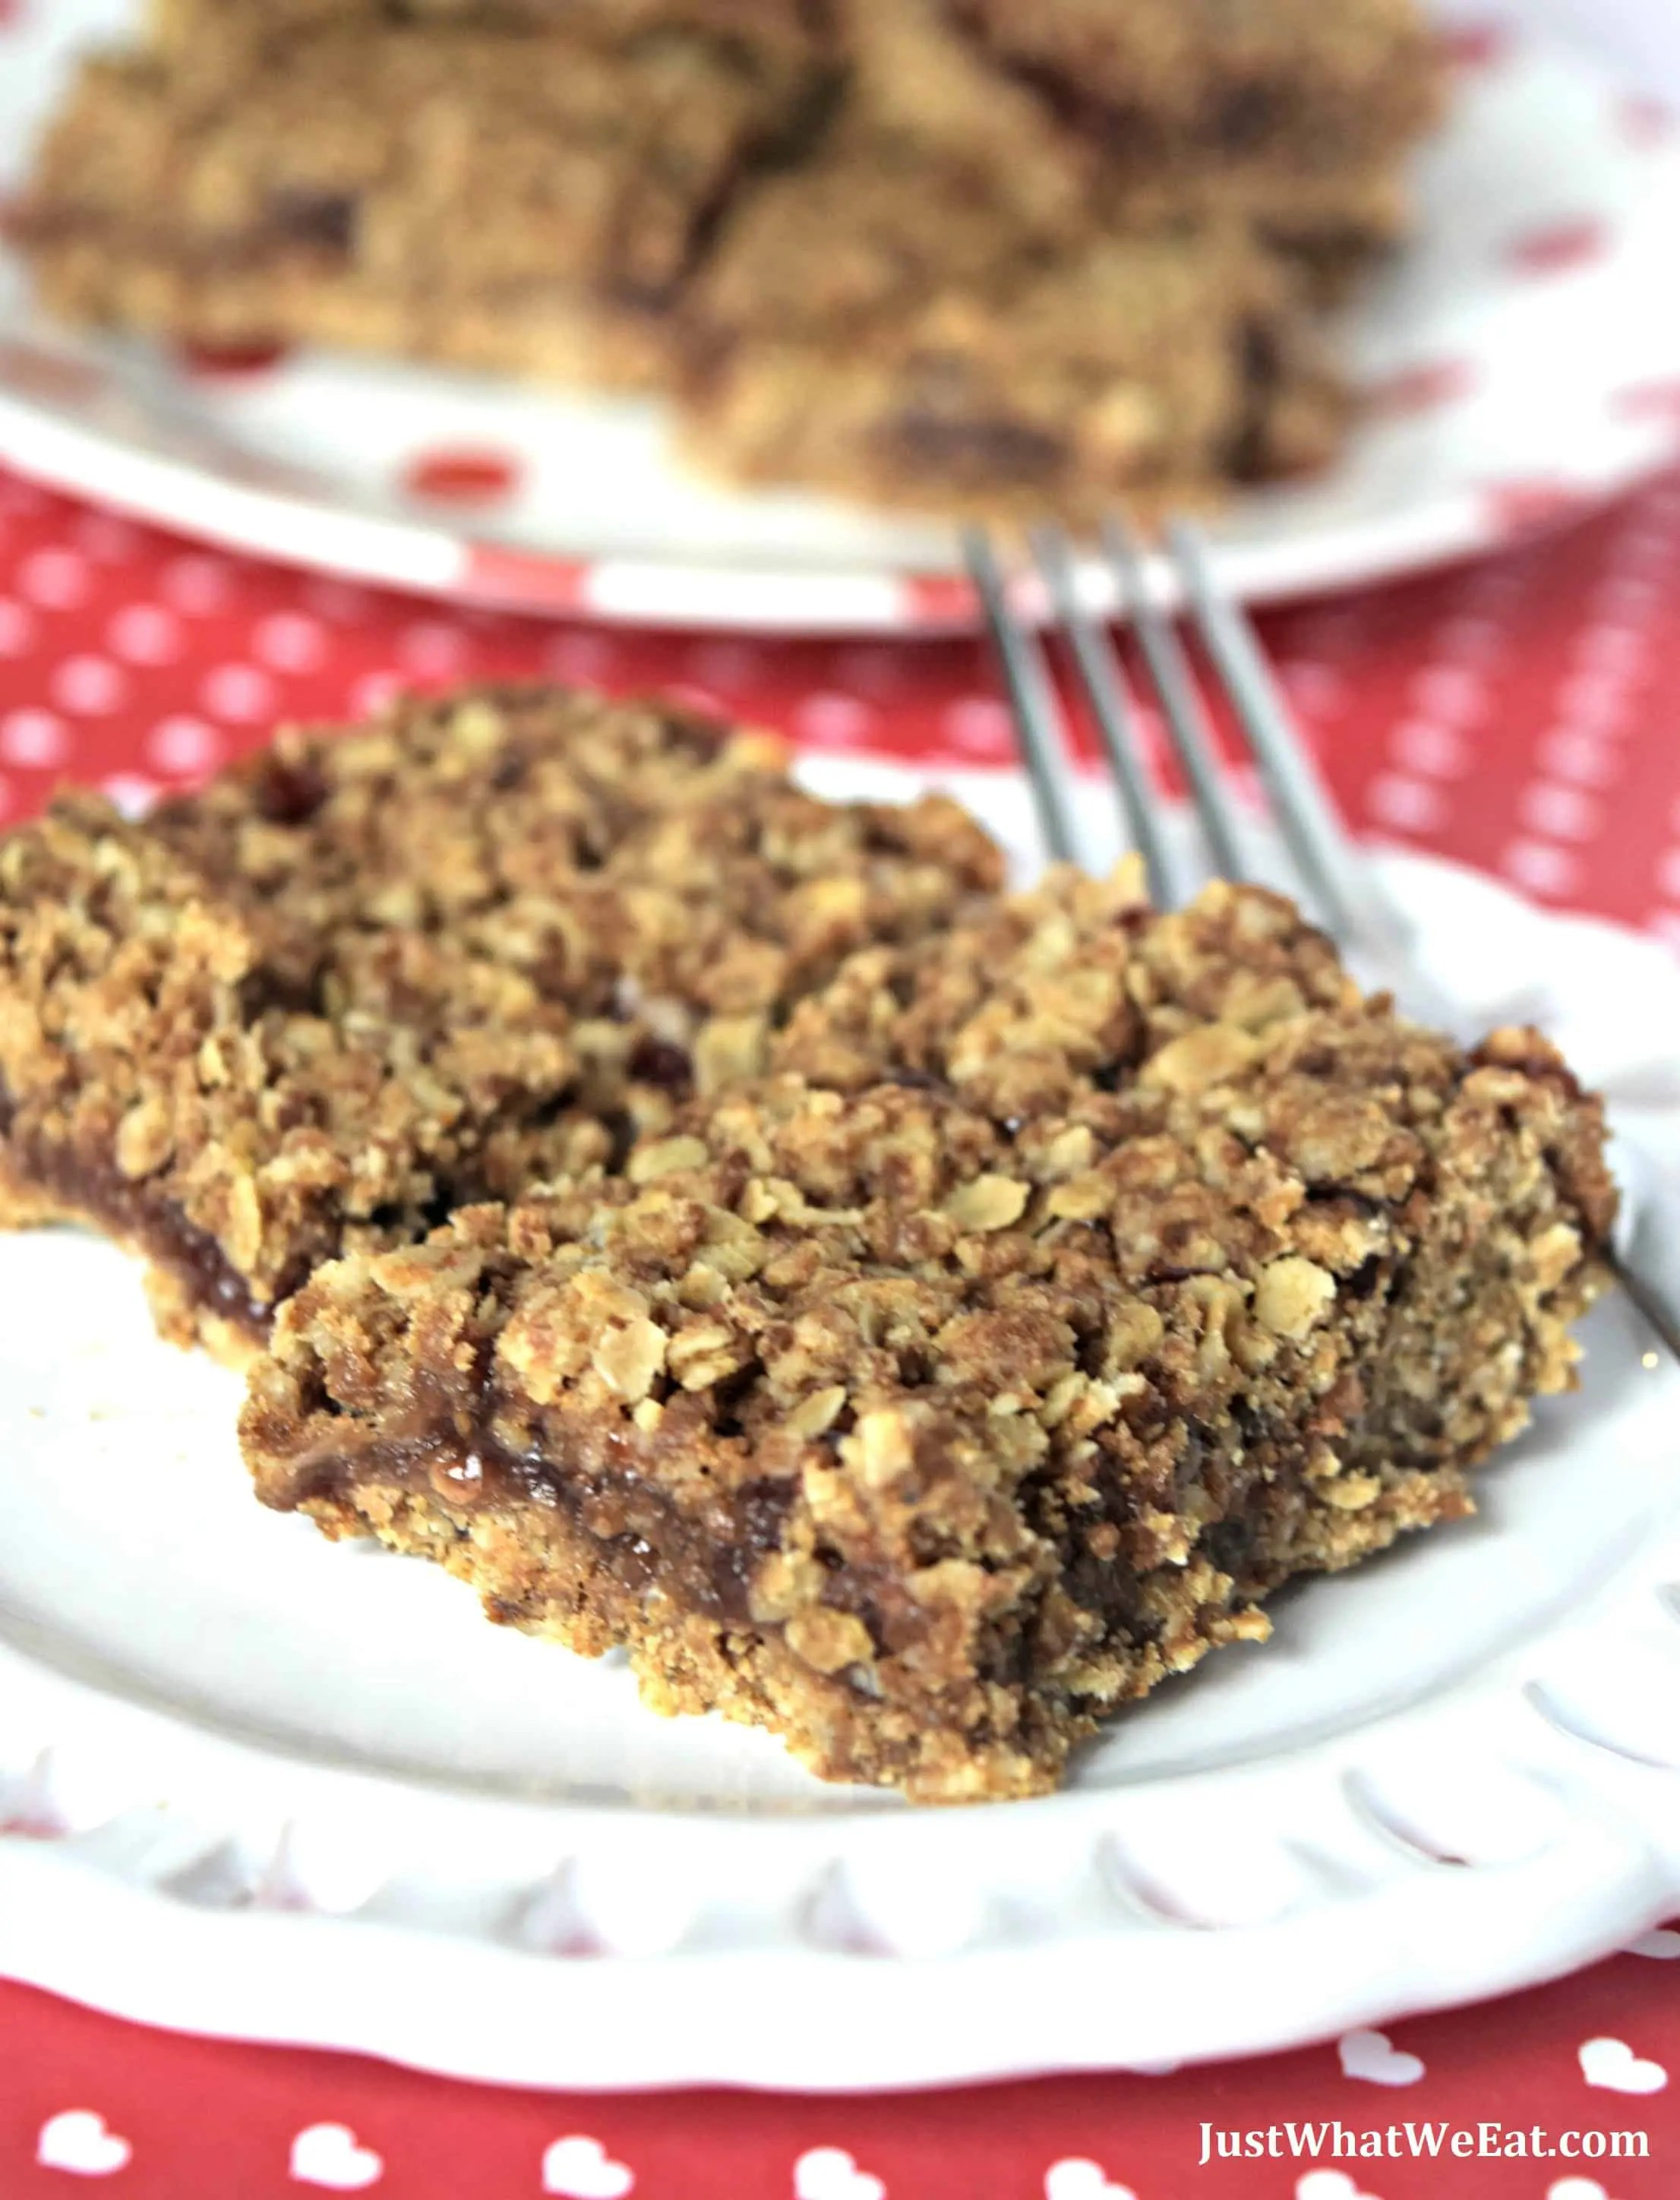 Strawberry Oatmeal Bars - Gluten Free, Vegan, & Refined Sugar Free